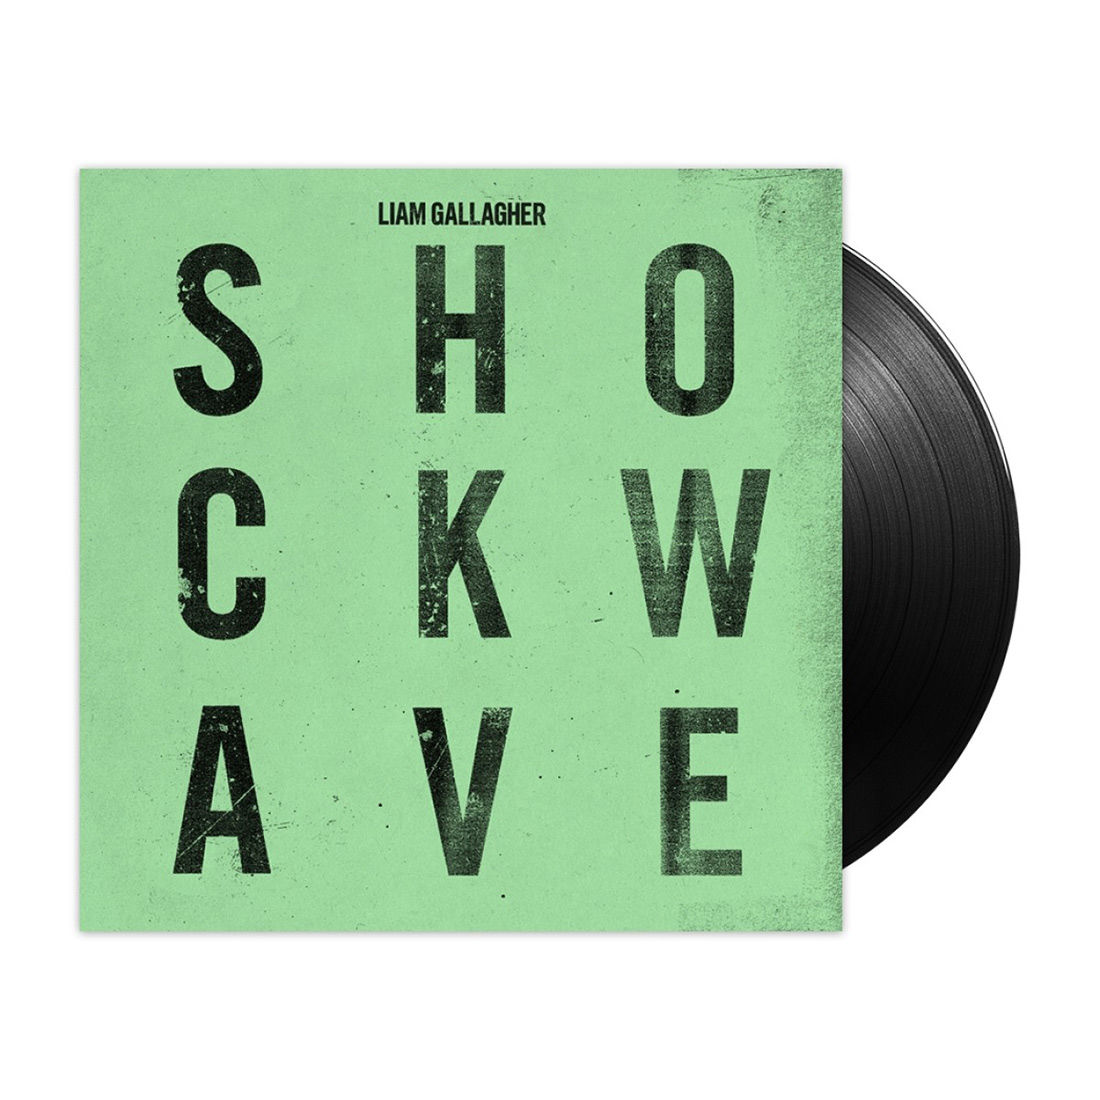 News – Liam Gallagher – Shockwave